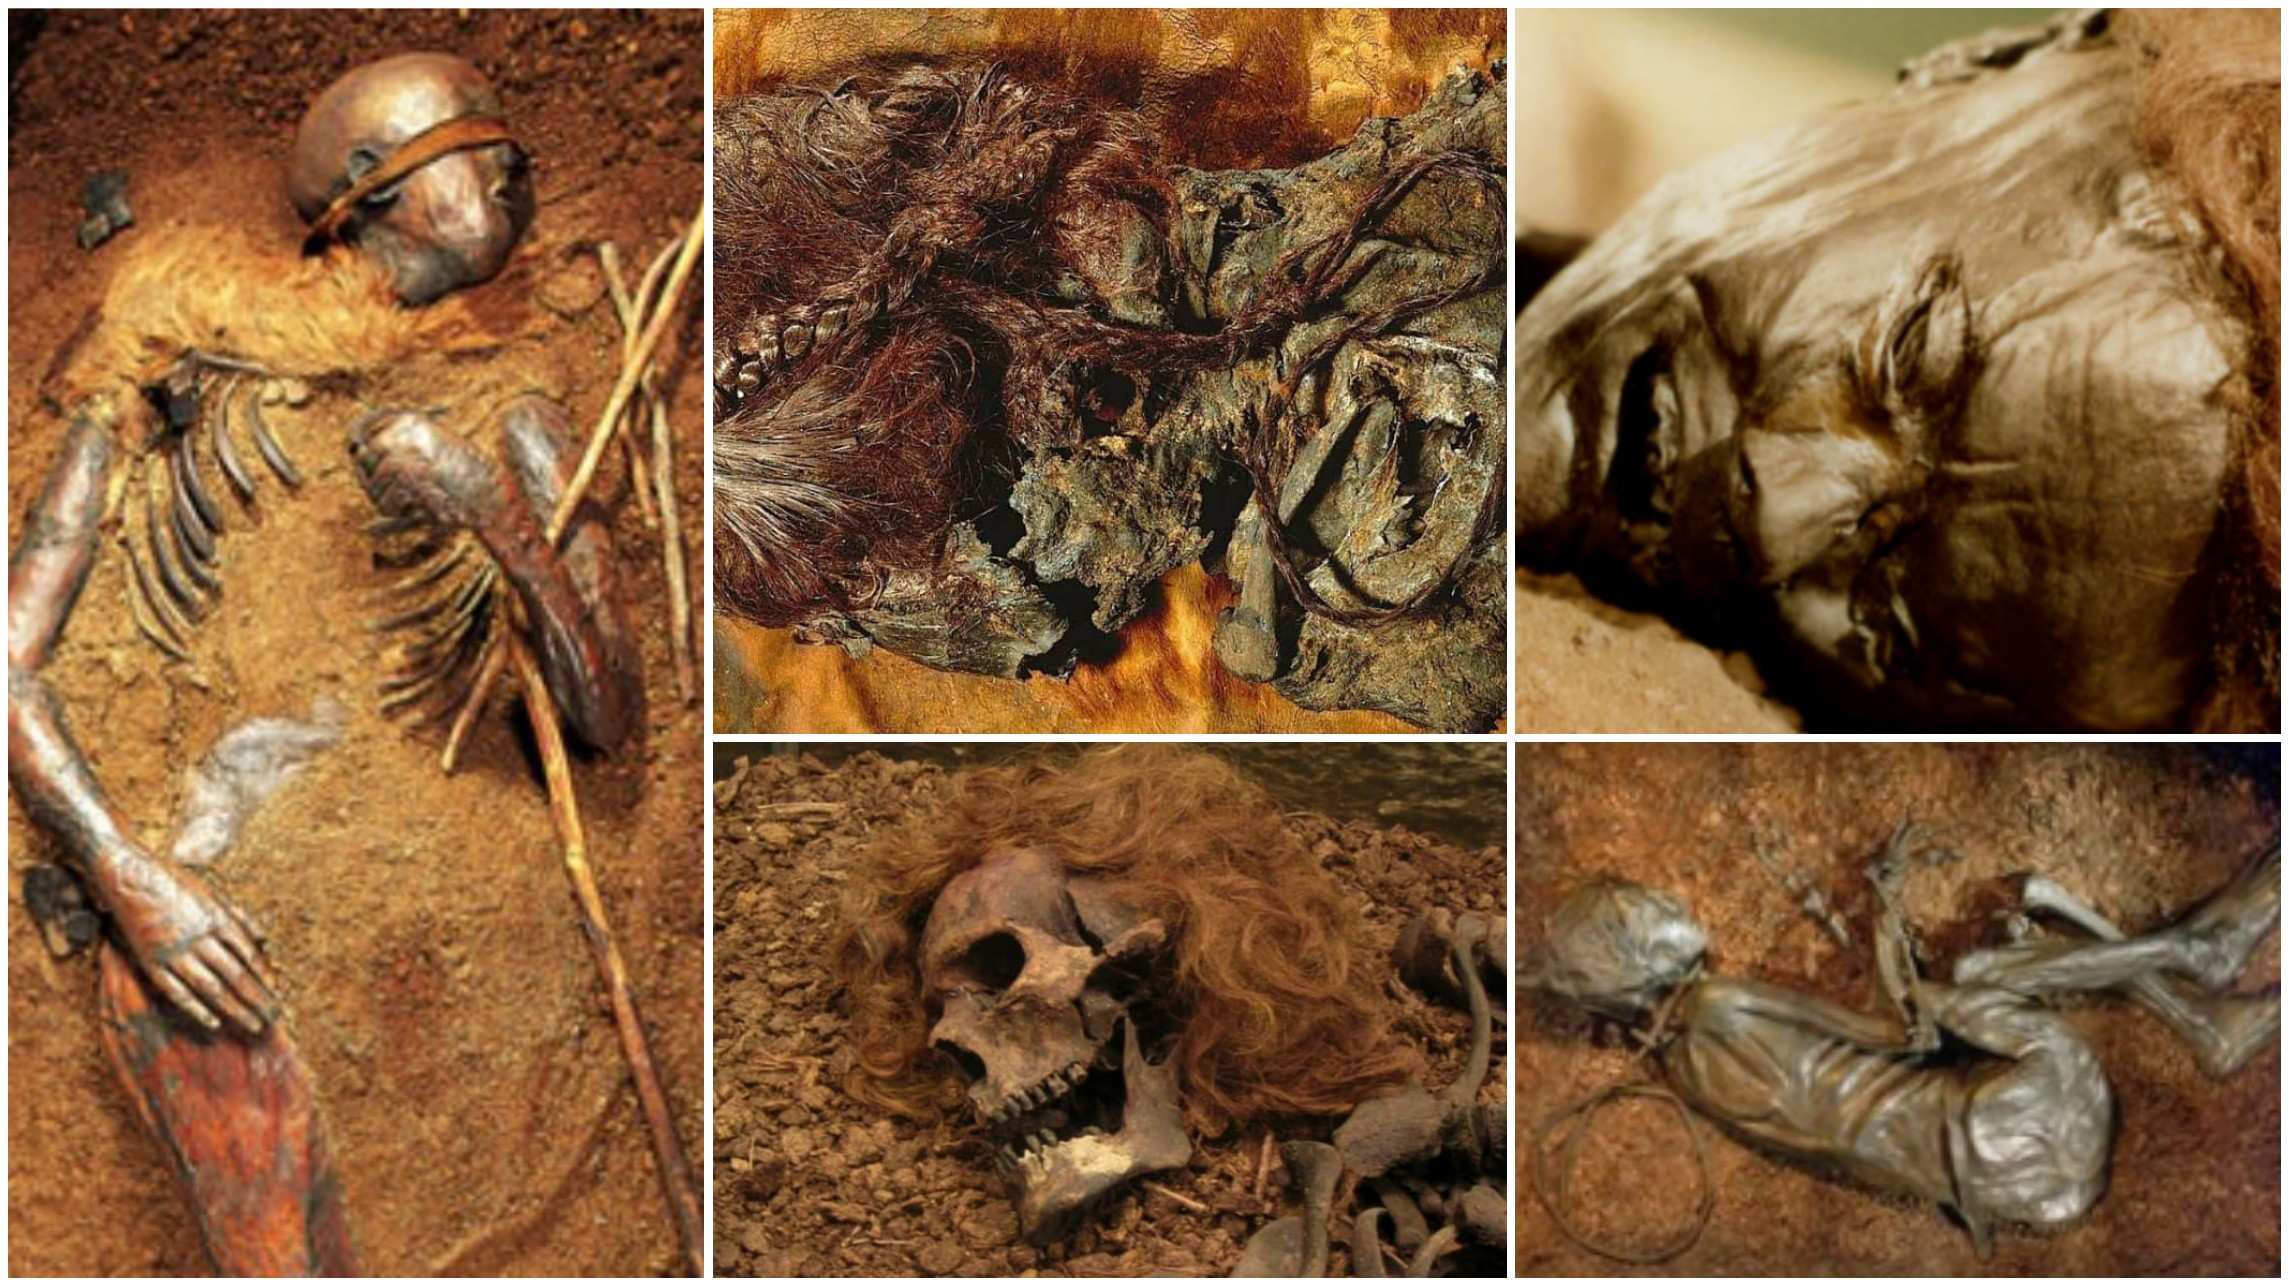 Europe's Famed Bog Bodies Are Starting to Reveal Their Secrets